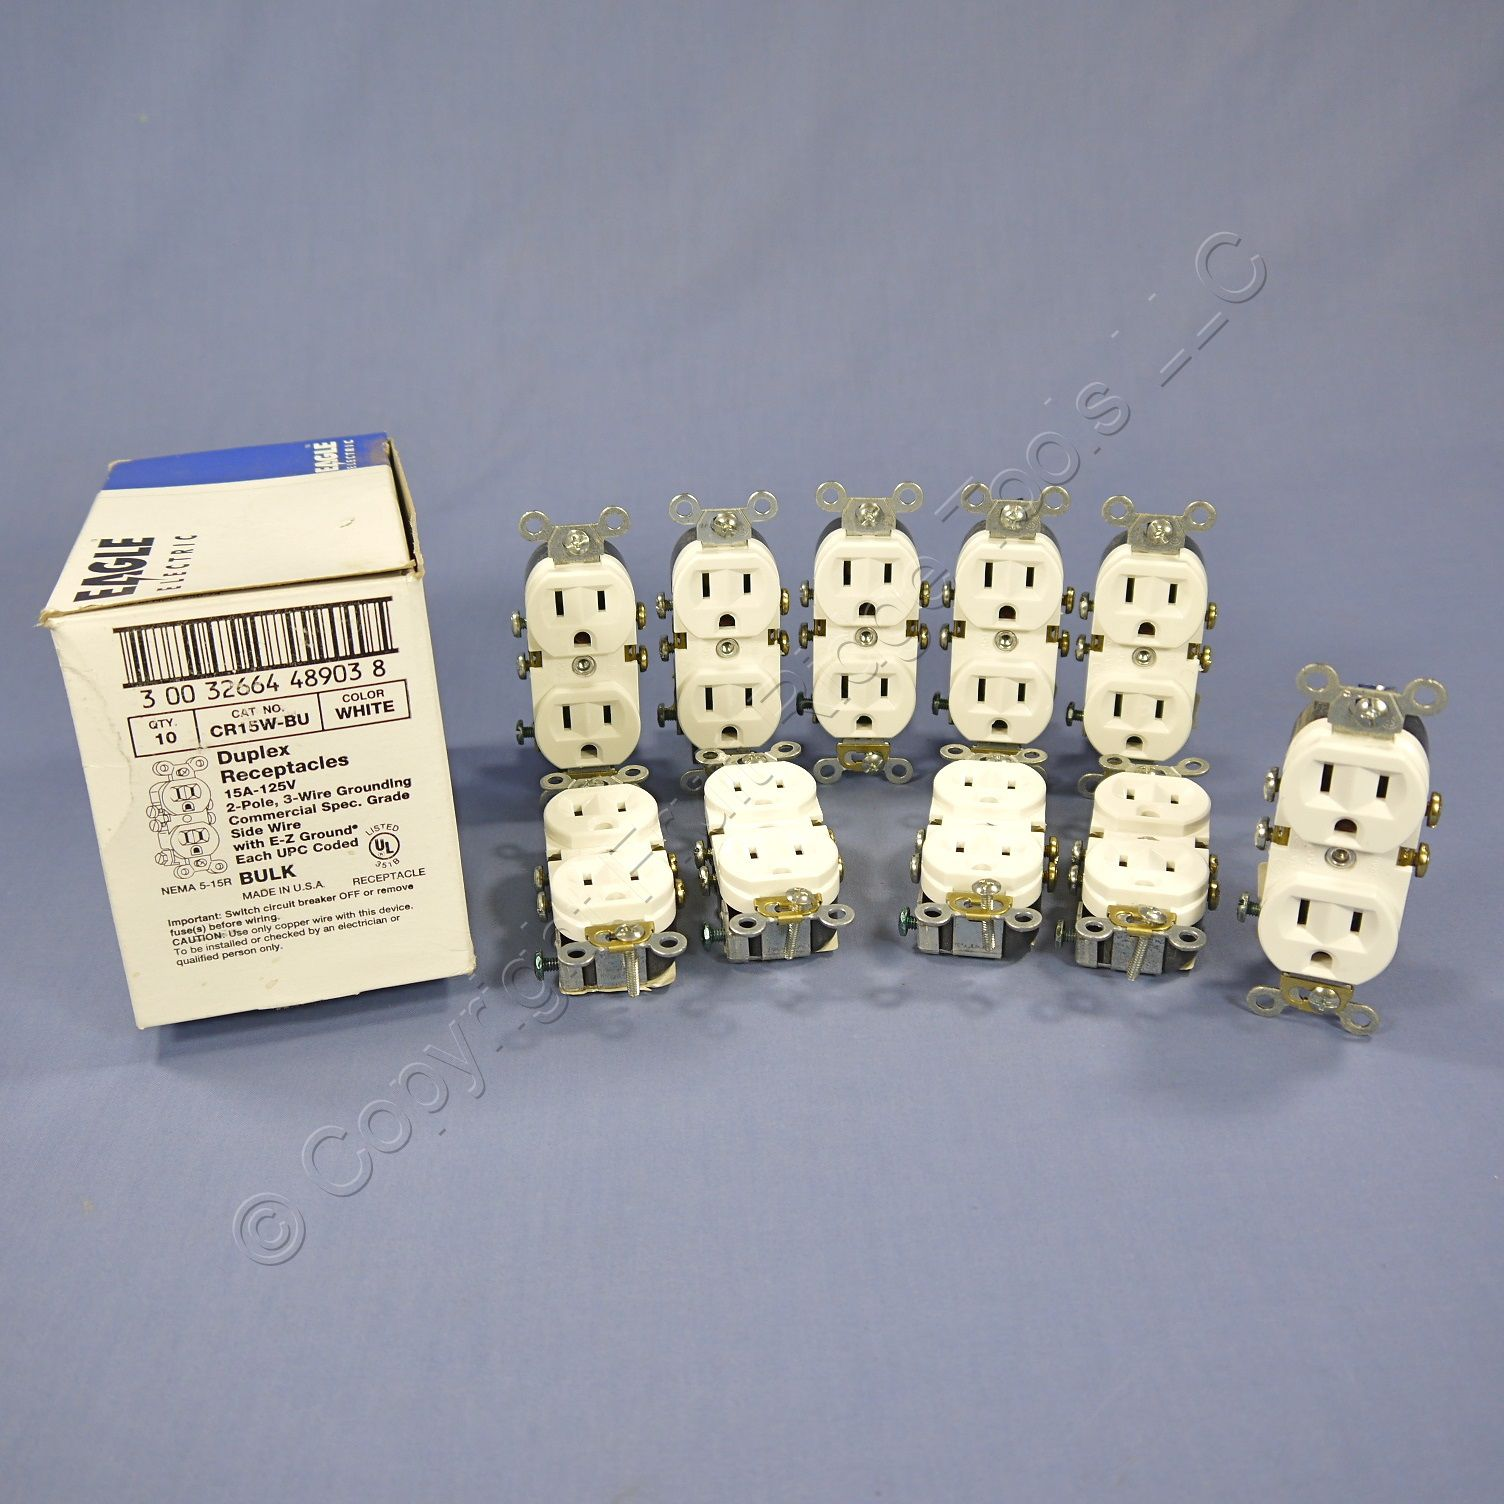 10 Eagle White COMMERCIAL Straight Blade Outlet Receptacles NEMA 5 ...